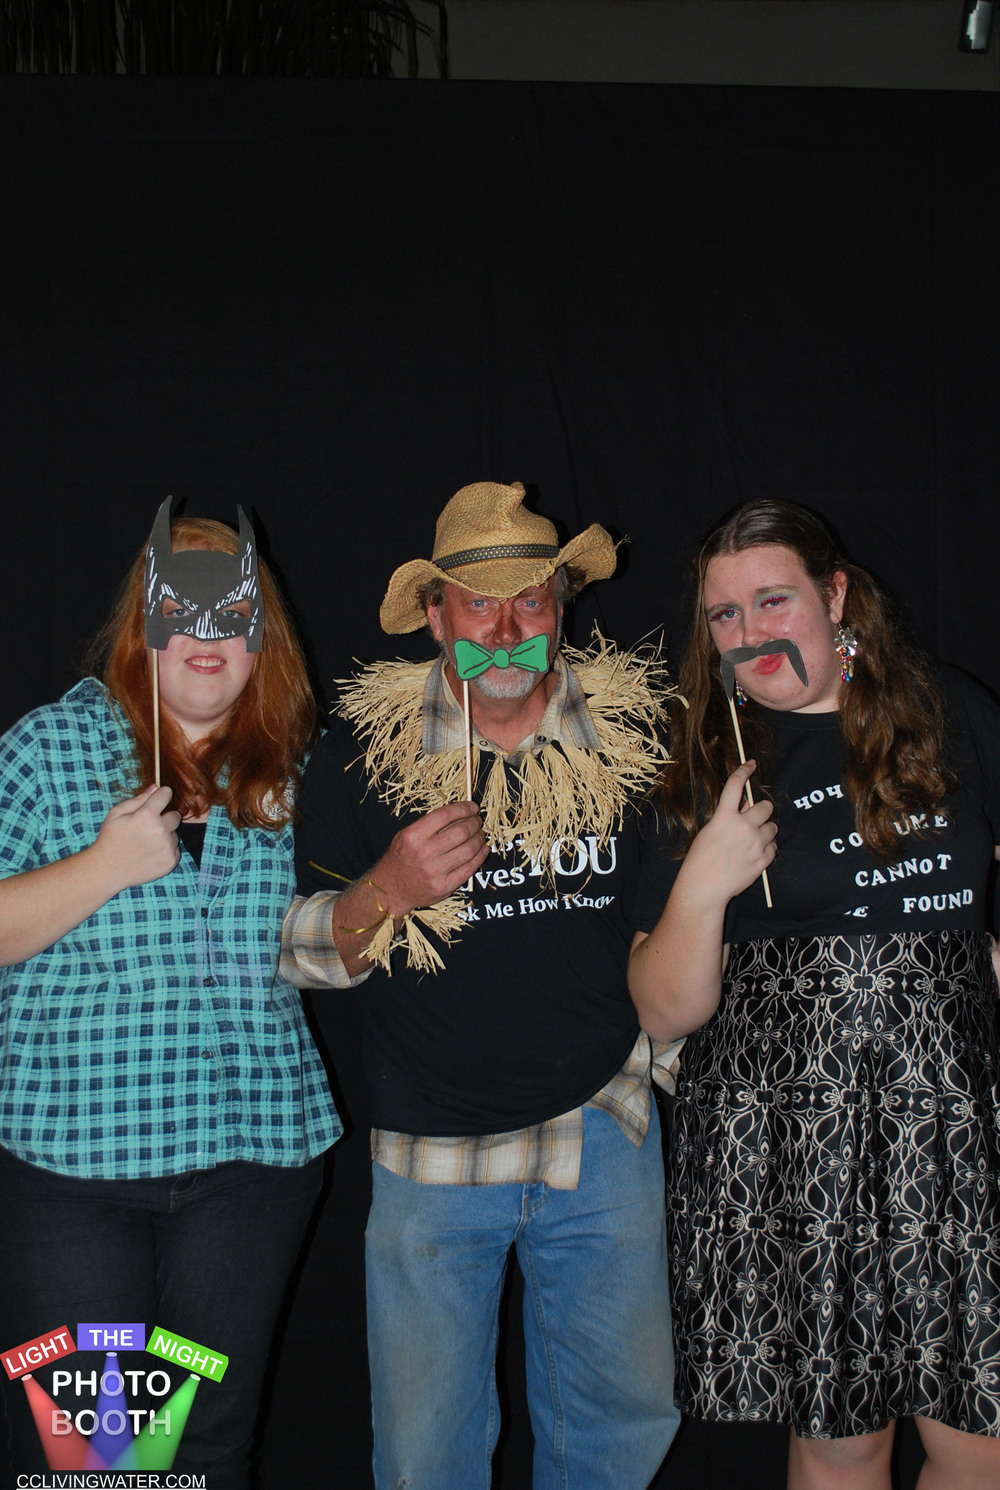 2014-10 - Light The Night Photo Booth (90) copy.jpg